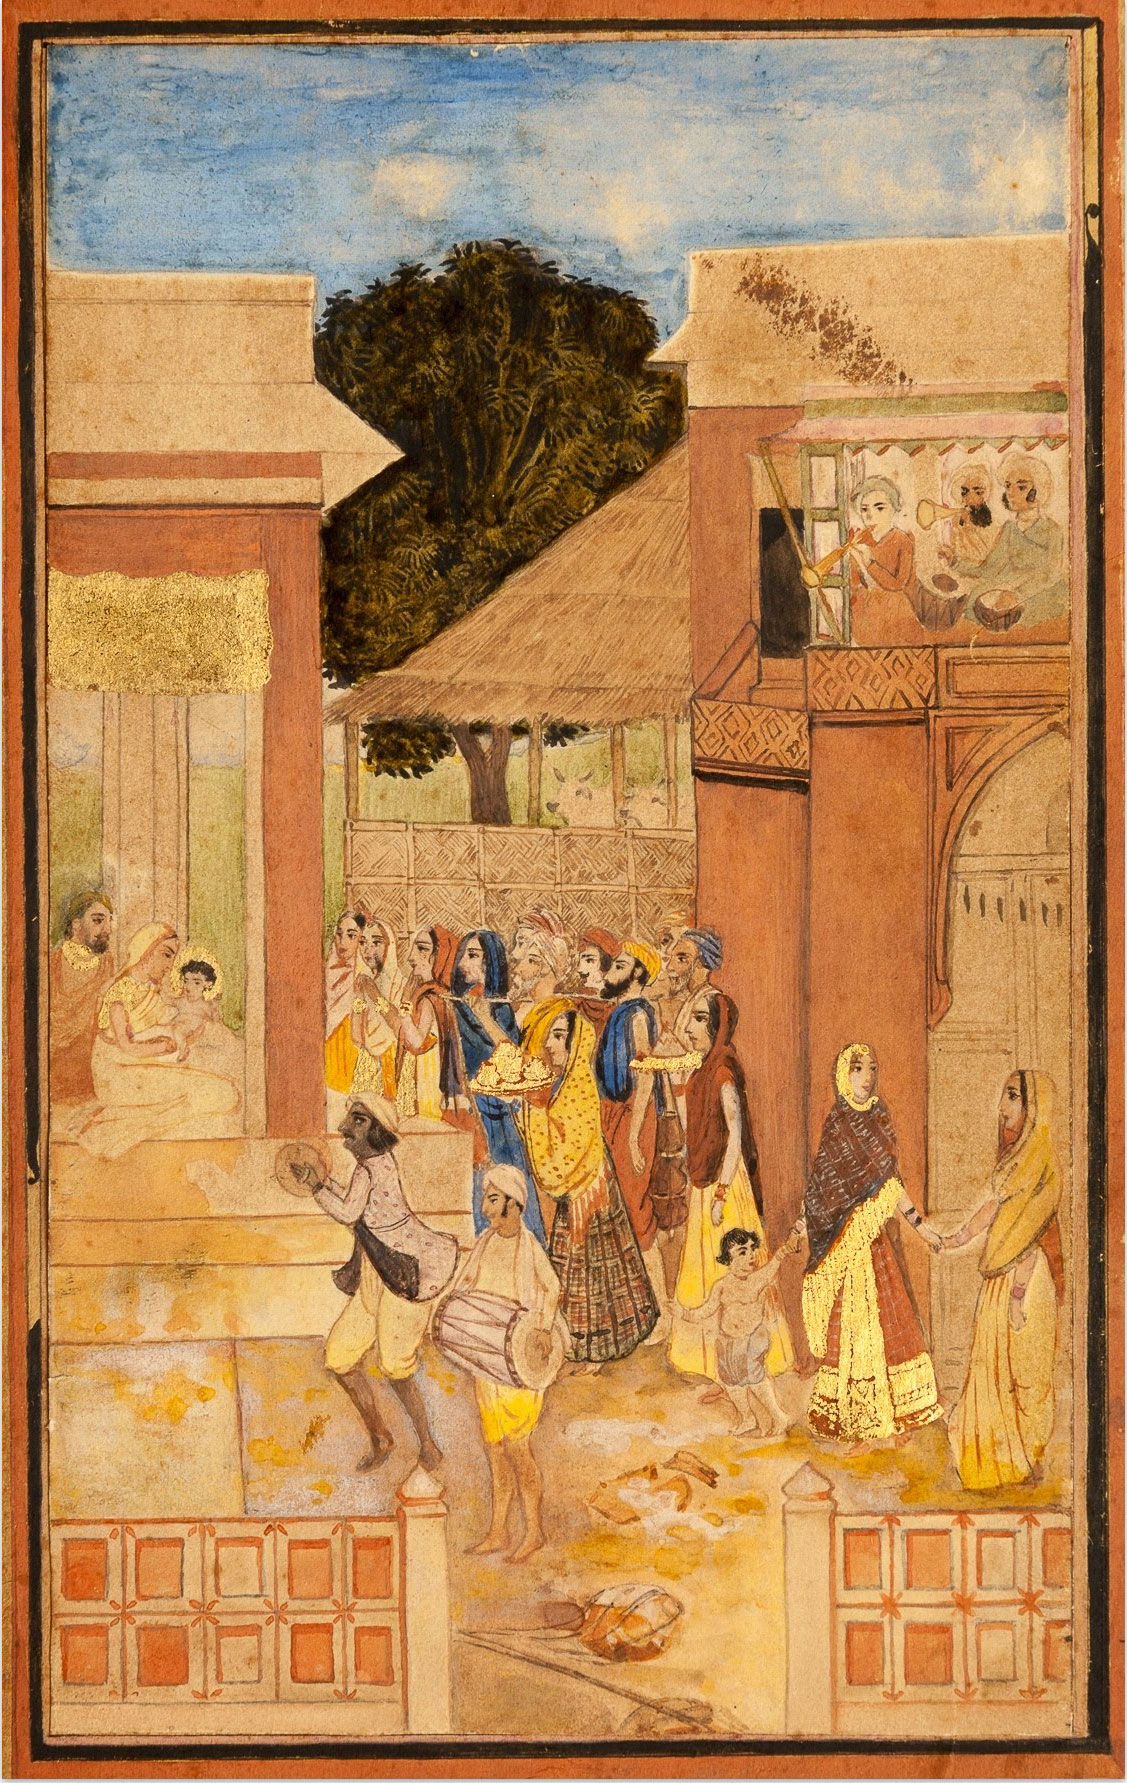 Birth of Krishna by Abanindranath Tagore 1895-1897